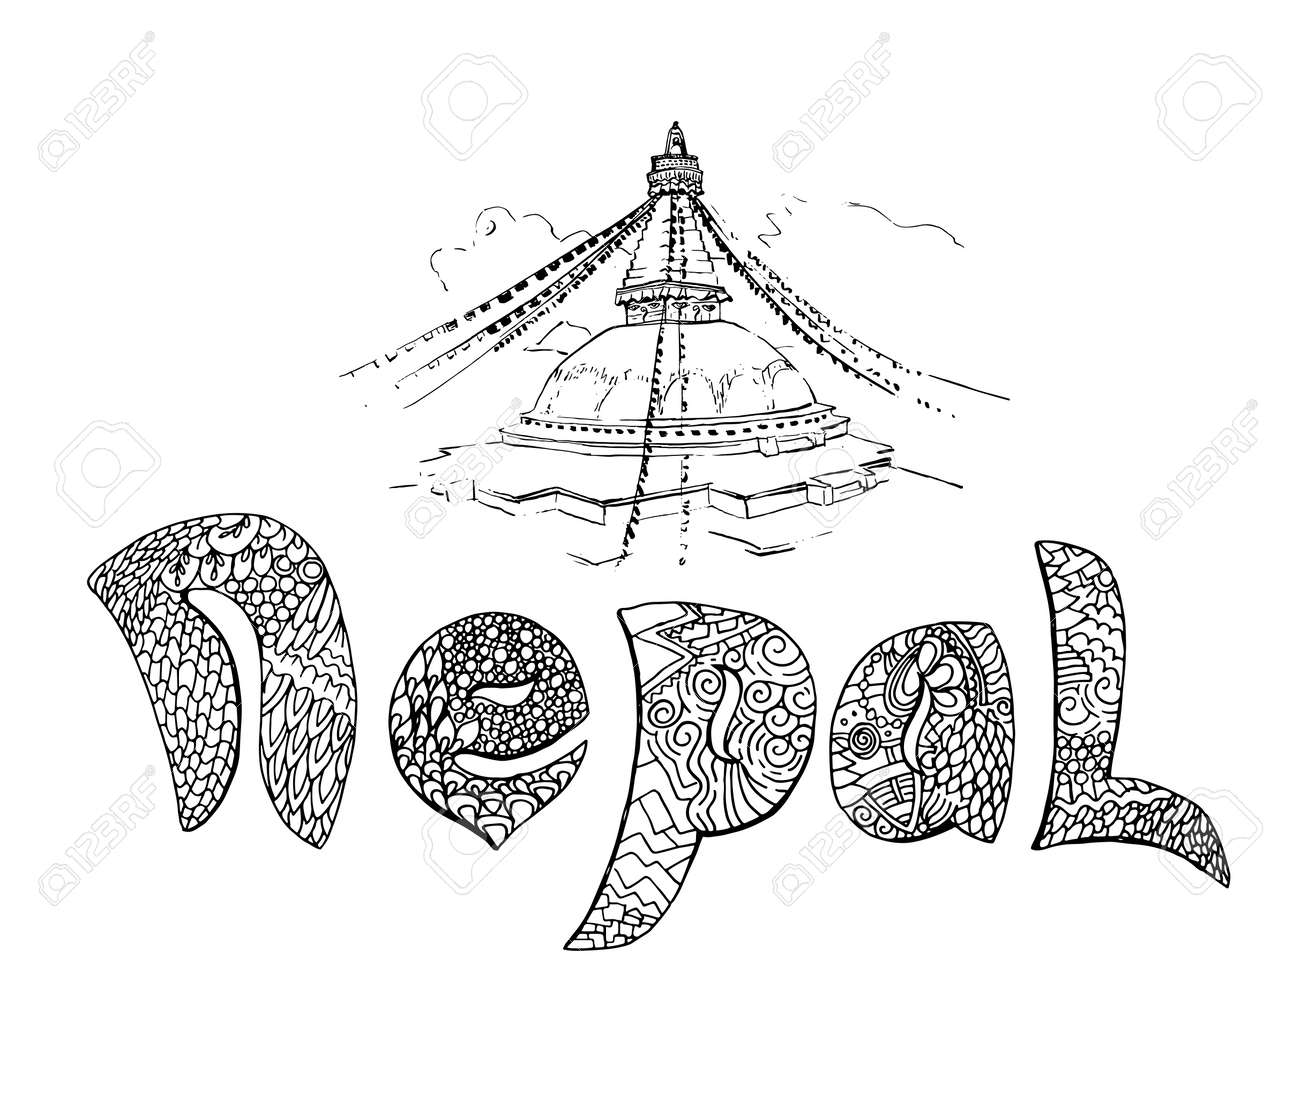 decorative hand lettering of word nepal filled with doodle patterns